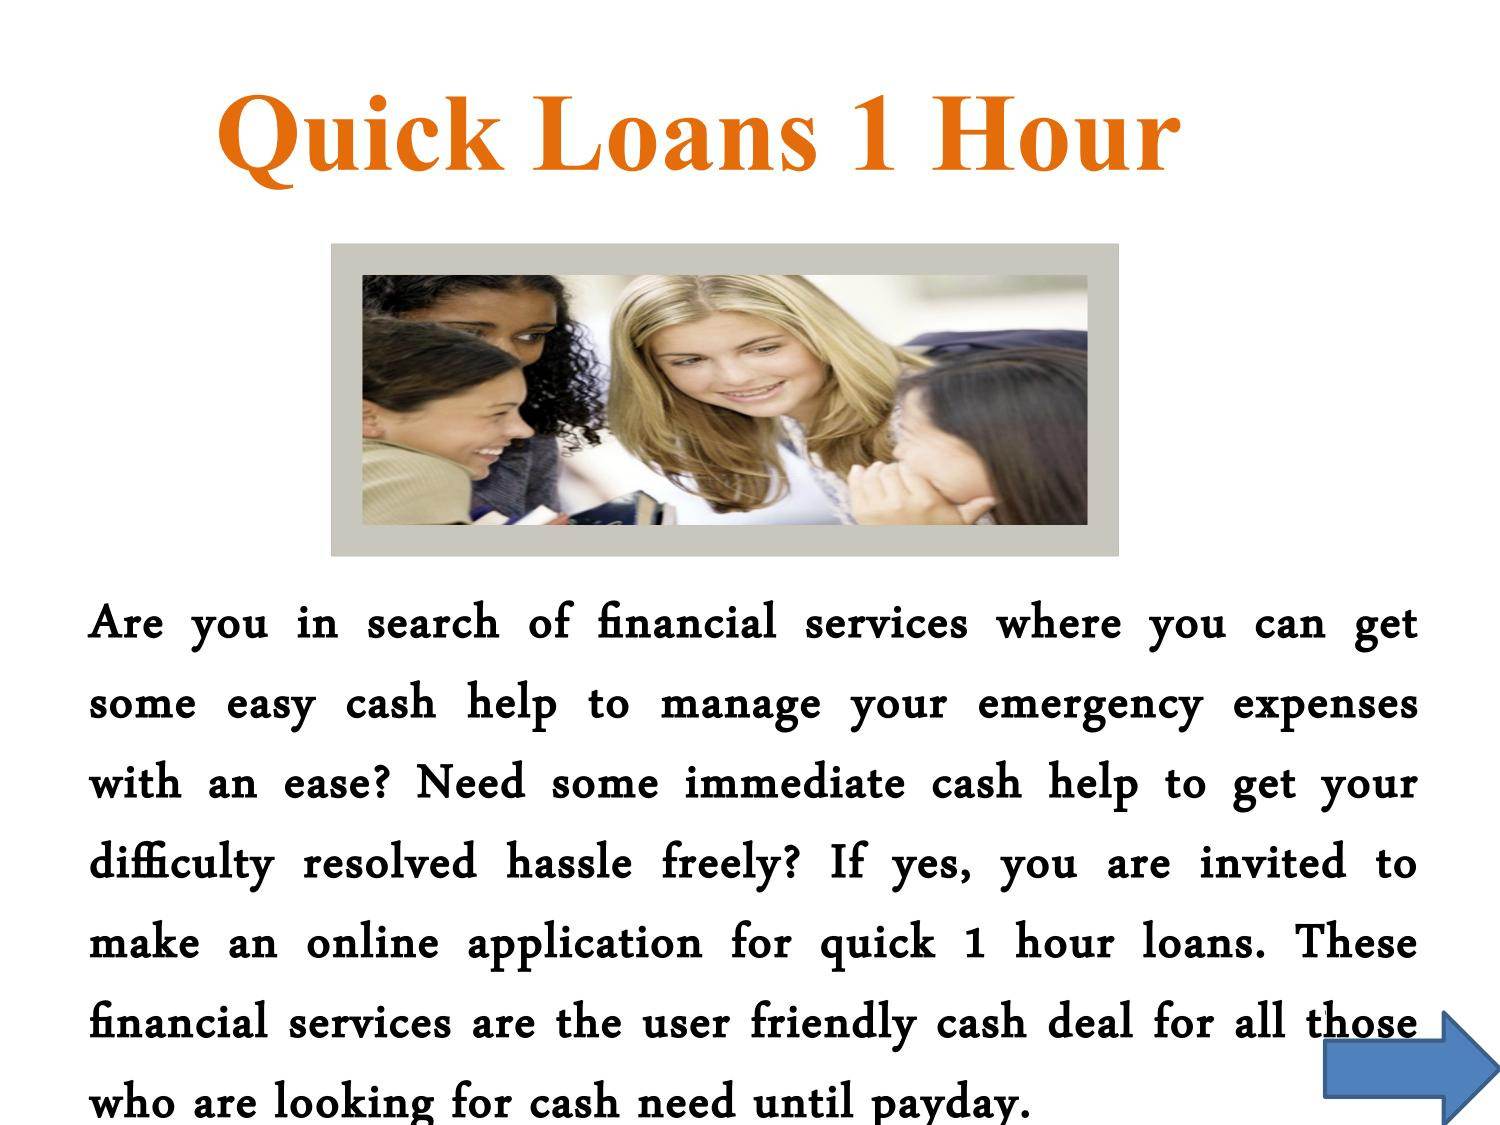 quick loans 1 hour - quick and affordable fiscal support for cash